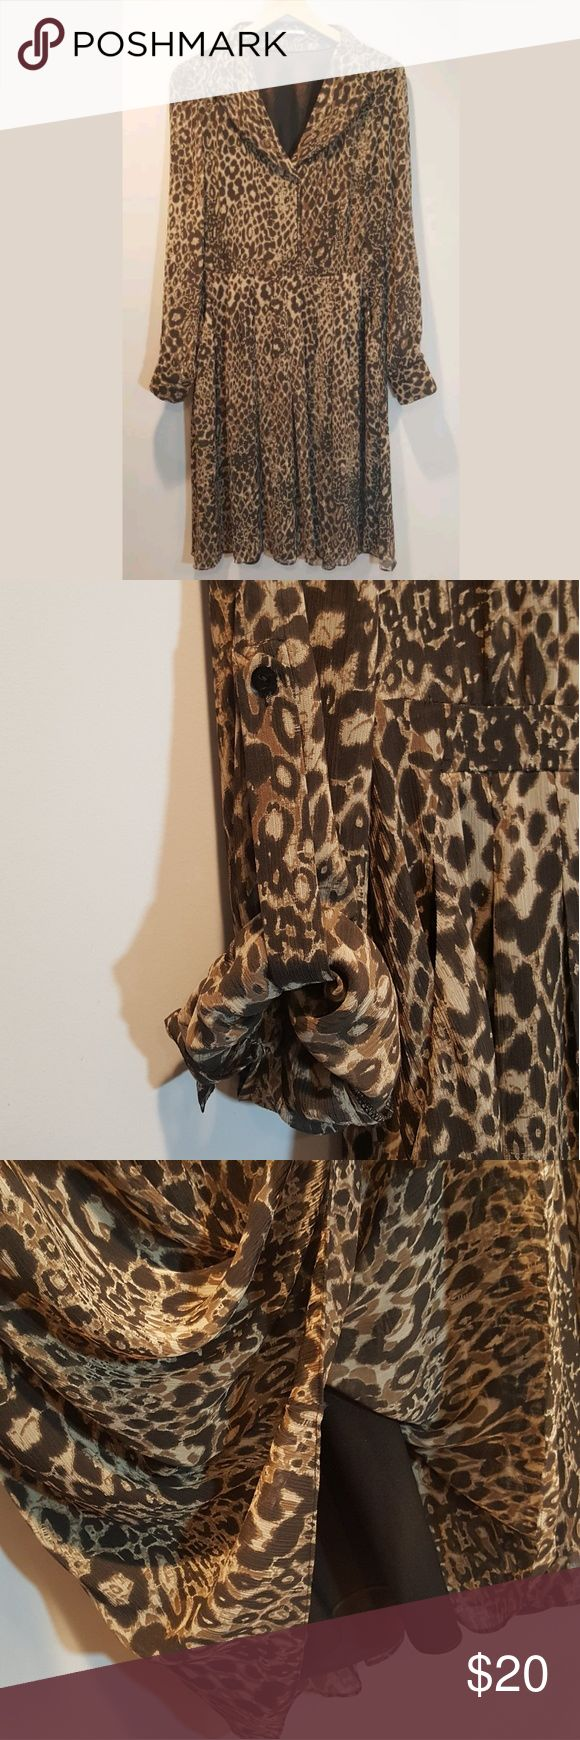 """Tahari Leopards Animal Print Long Sleeve Dress Tahari Womans Leopards Animal Print Long Sleeve Brown Career Dress Size 14  Measurements  Pit to Pit 21"""" Length 44"""" Shoulder 26""""  This Dress is pre-owned, but in great condition. No stains or tears.  Note: item might have shrunk when washed. We take great care to measure every item on a flat surface. To ensure a good fit, please see the follow measurements.  Thank you for Shopping! Be sure to add me to your favorites list! Check out my other…"""